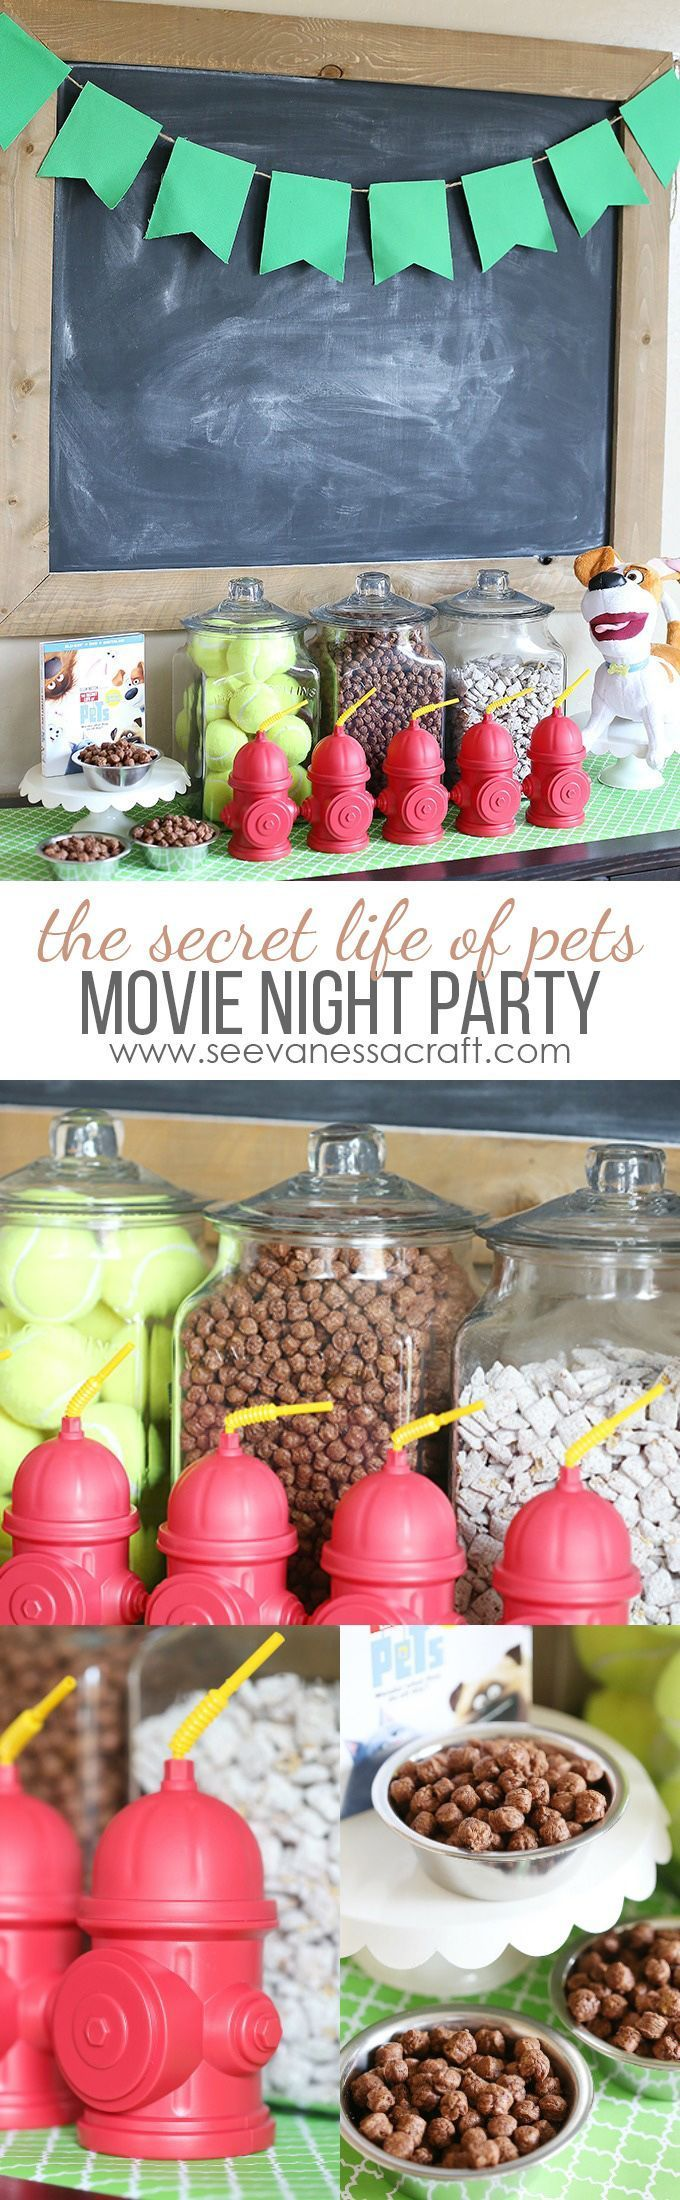 Homemade Puppy Chow Recipe and The Secret Life of Pets Movie Night Party @secretlifeofpets #ad #TheSecretLifeOfPets #PetsPack